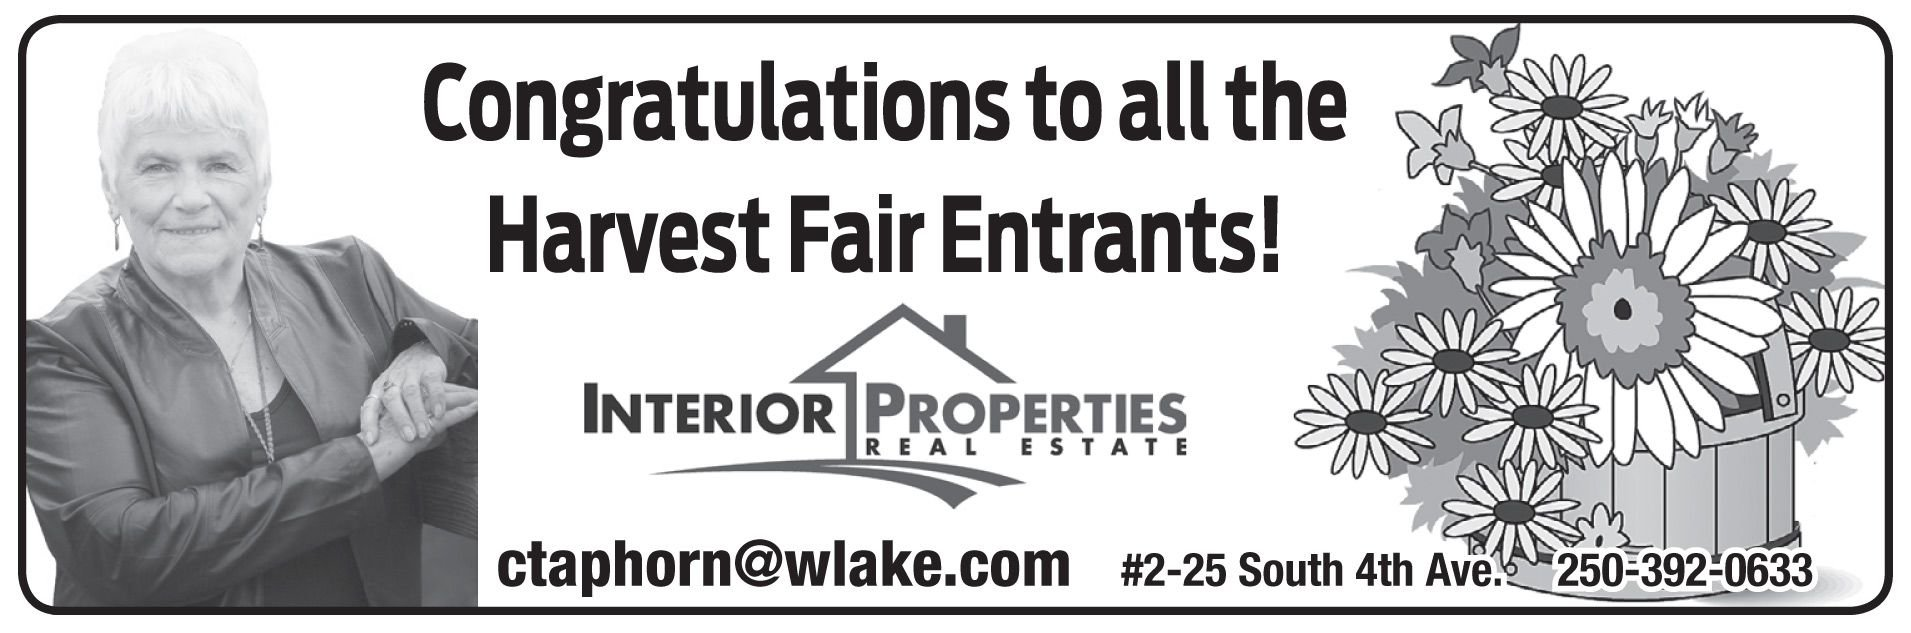 Please take a moment to visit our wonderful sponsors, Carol Taphorn Interior Properties Real Estate.  Click here.